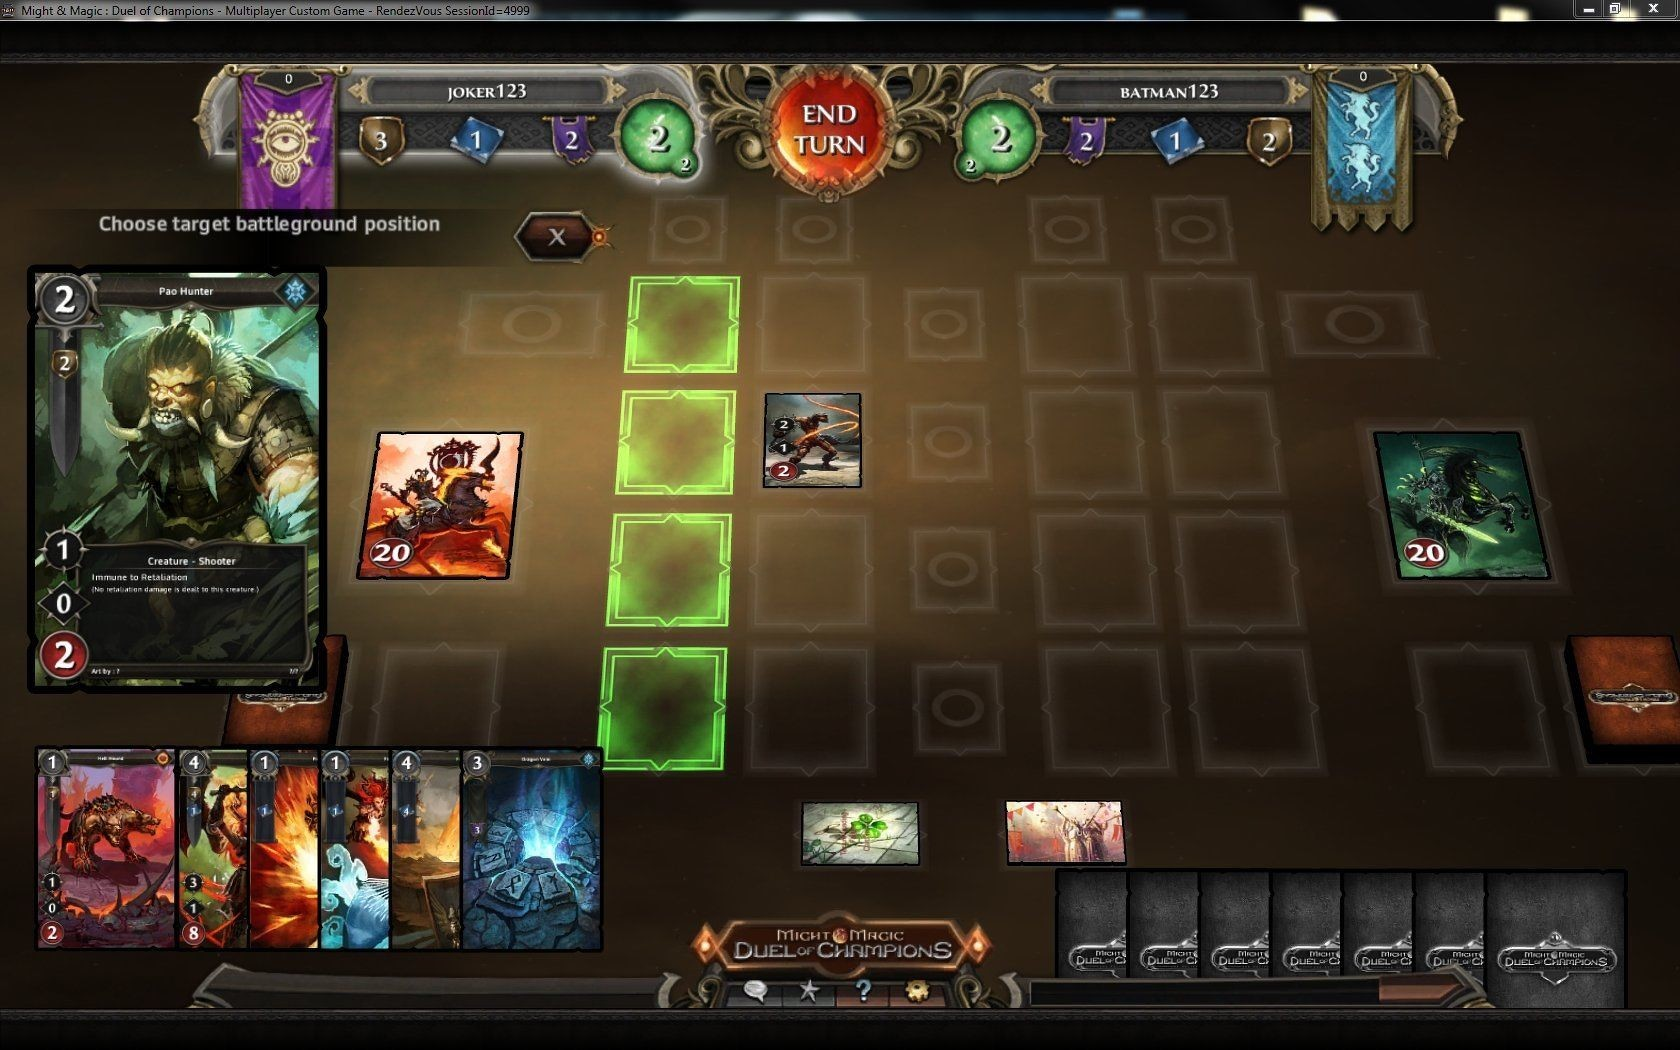 Online Card Games Might And Magic Duel Of Champions Pc Interview Gamewatcher